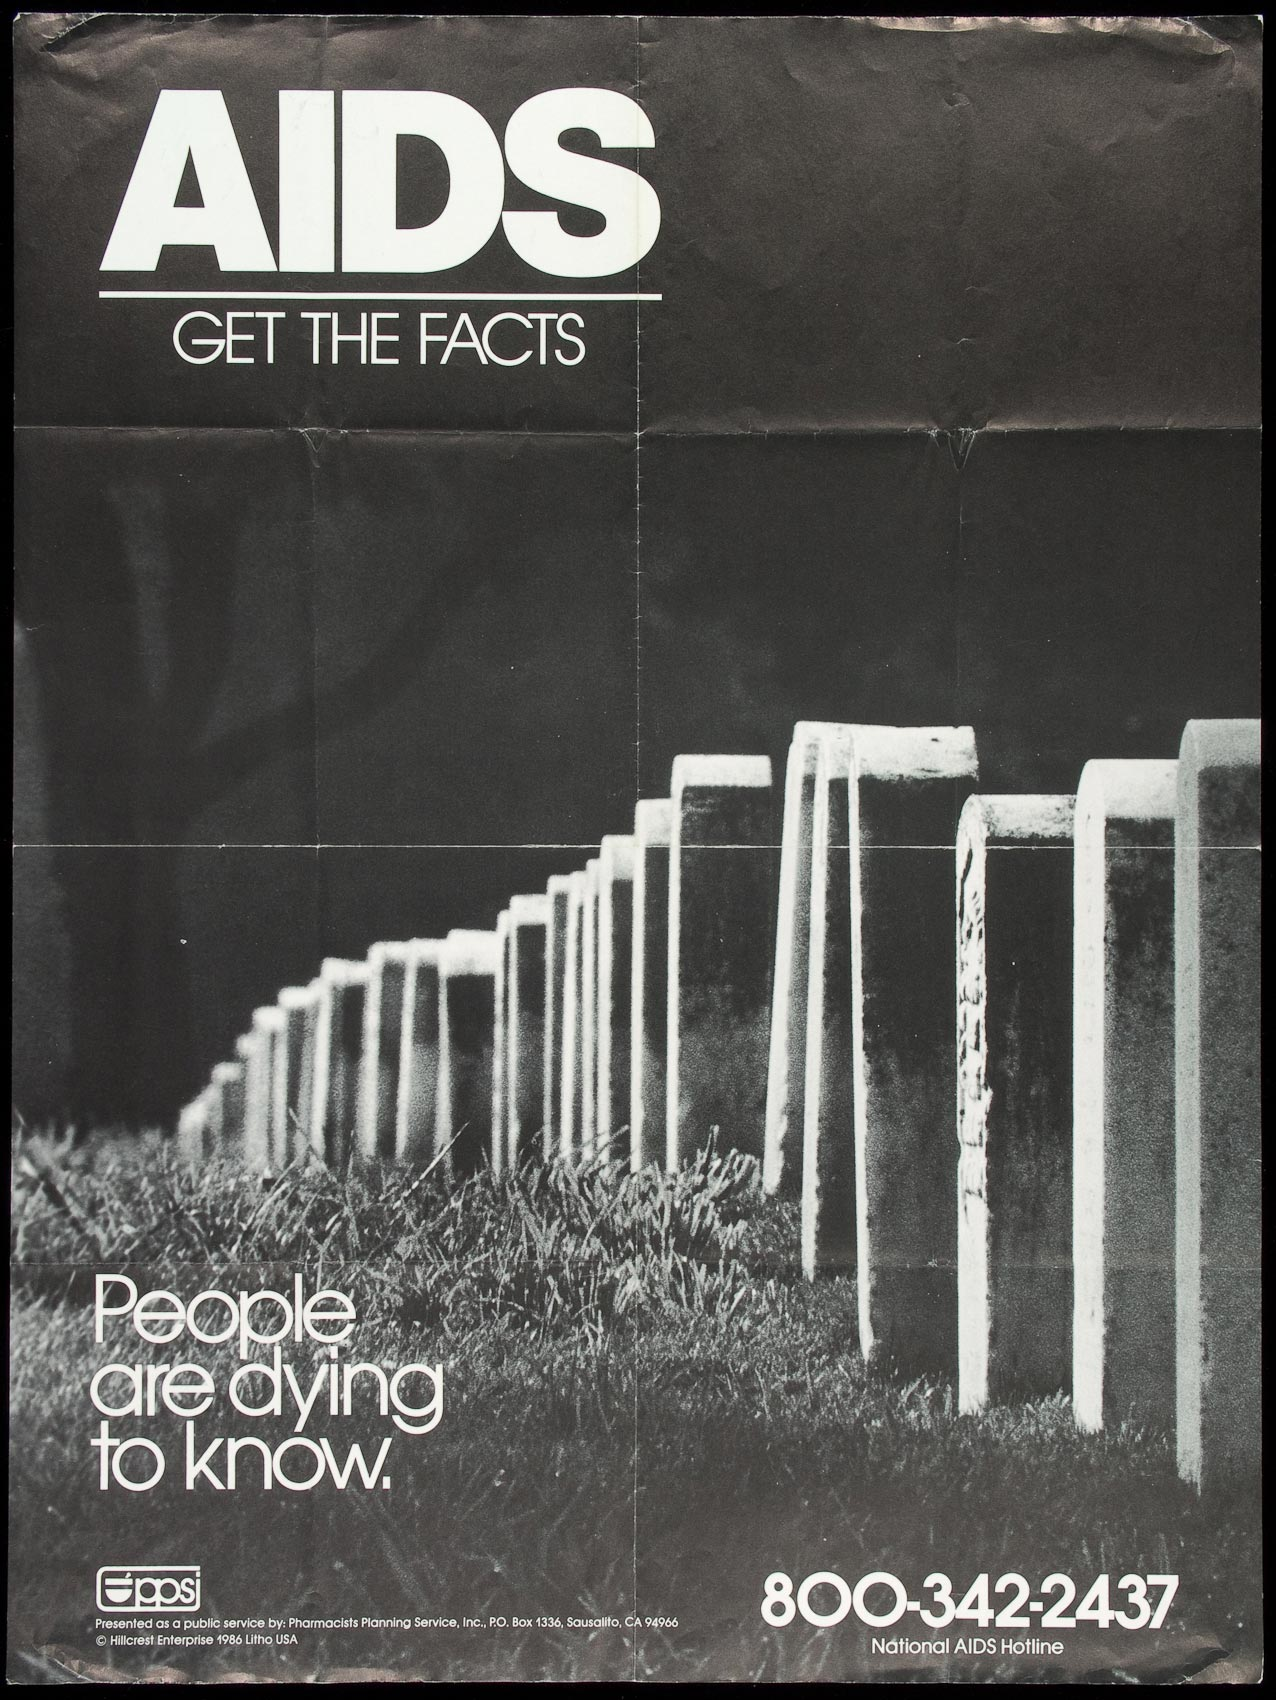 A 1986 poster from Pharmacists Planning Service in California.